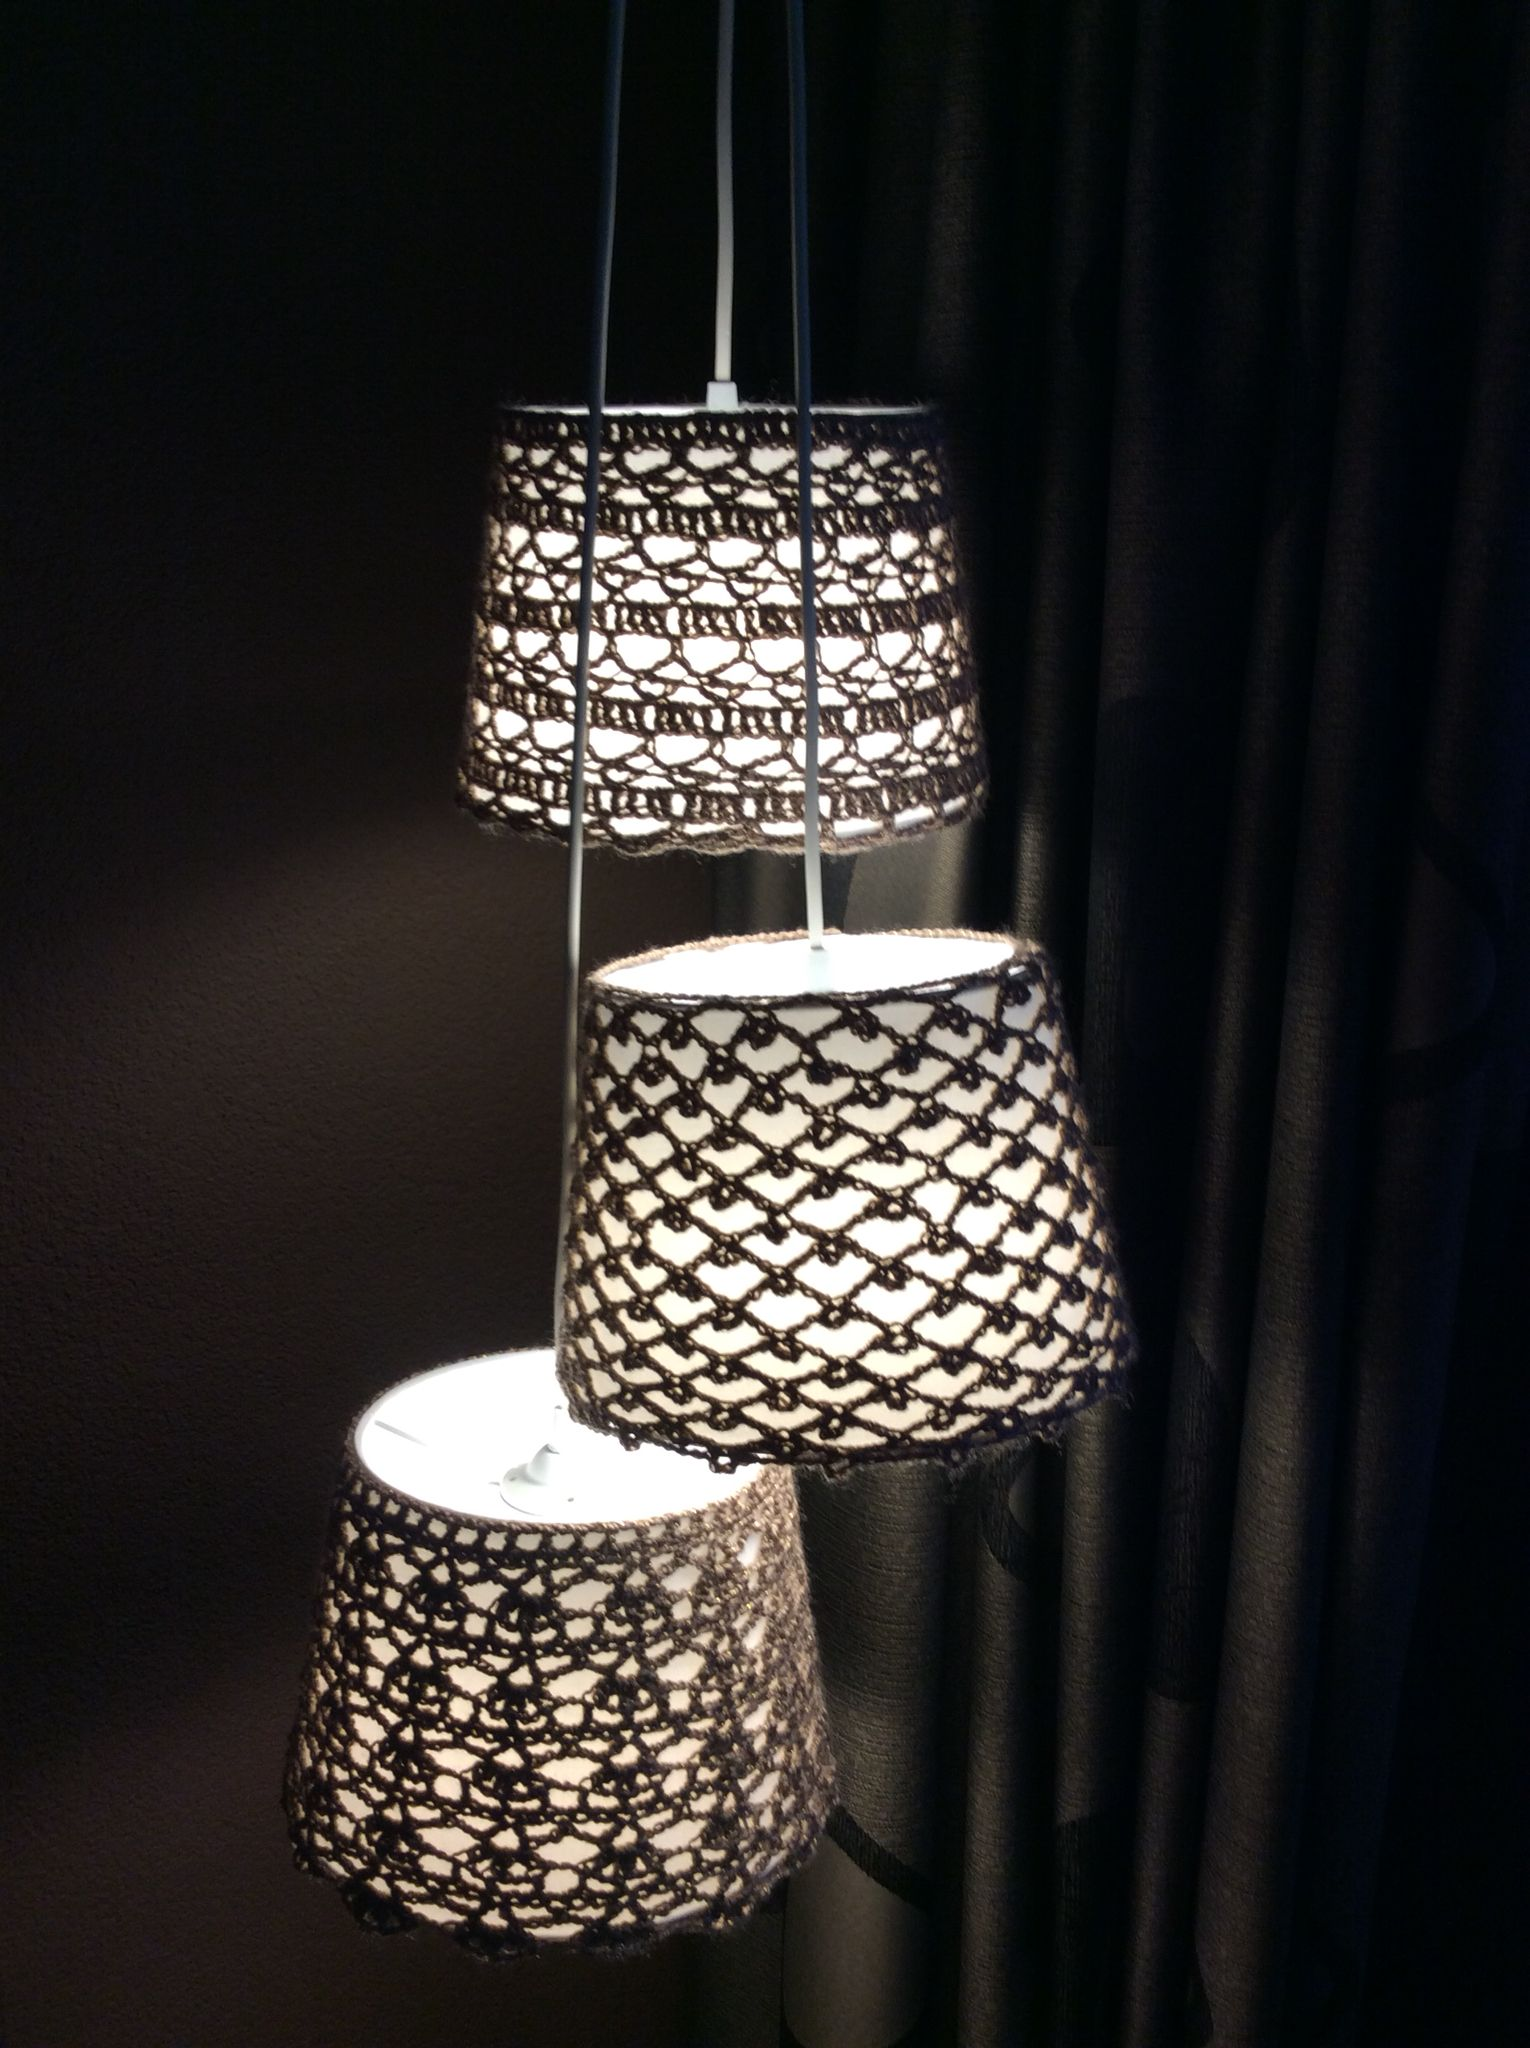 Crochet Covers For Ikea Lamp Ikea Lamp Gepimpt Met Gehaakte Hoes